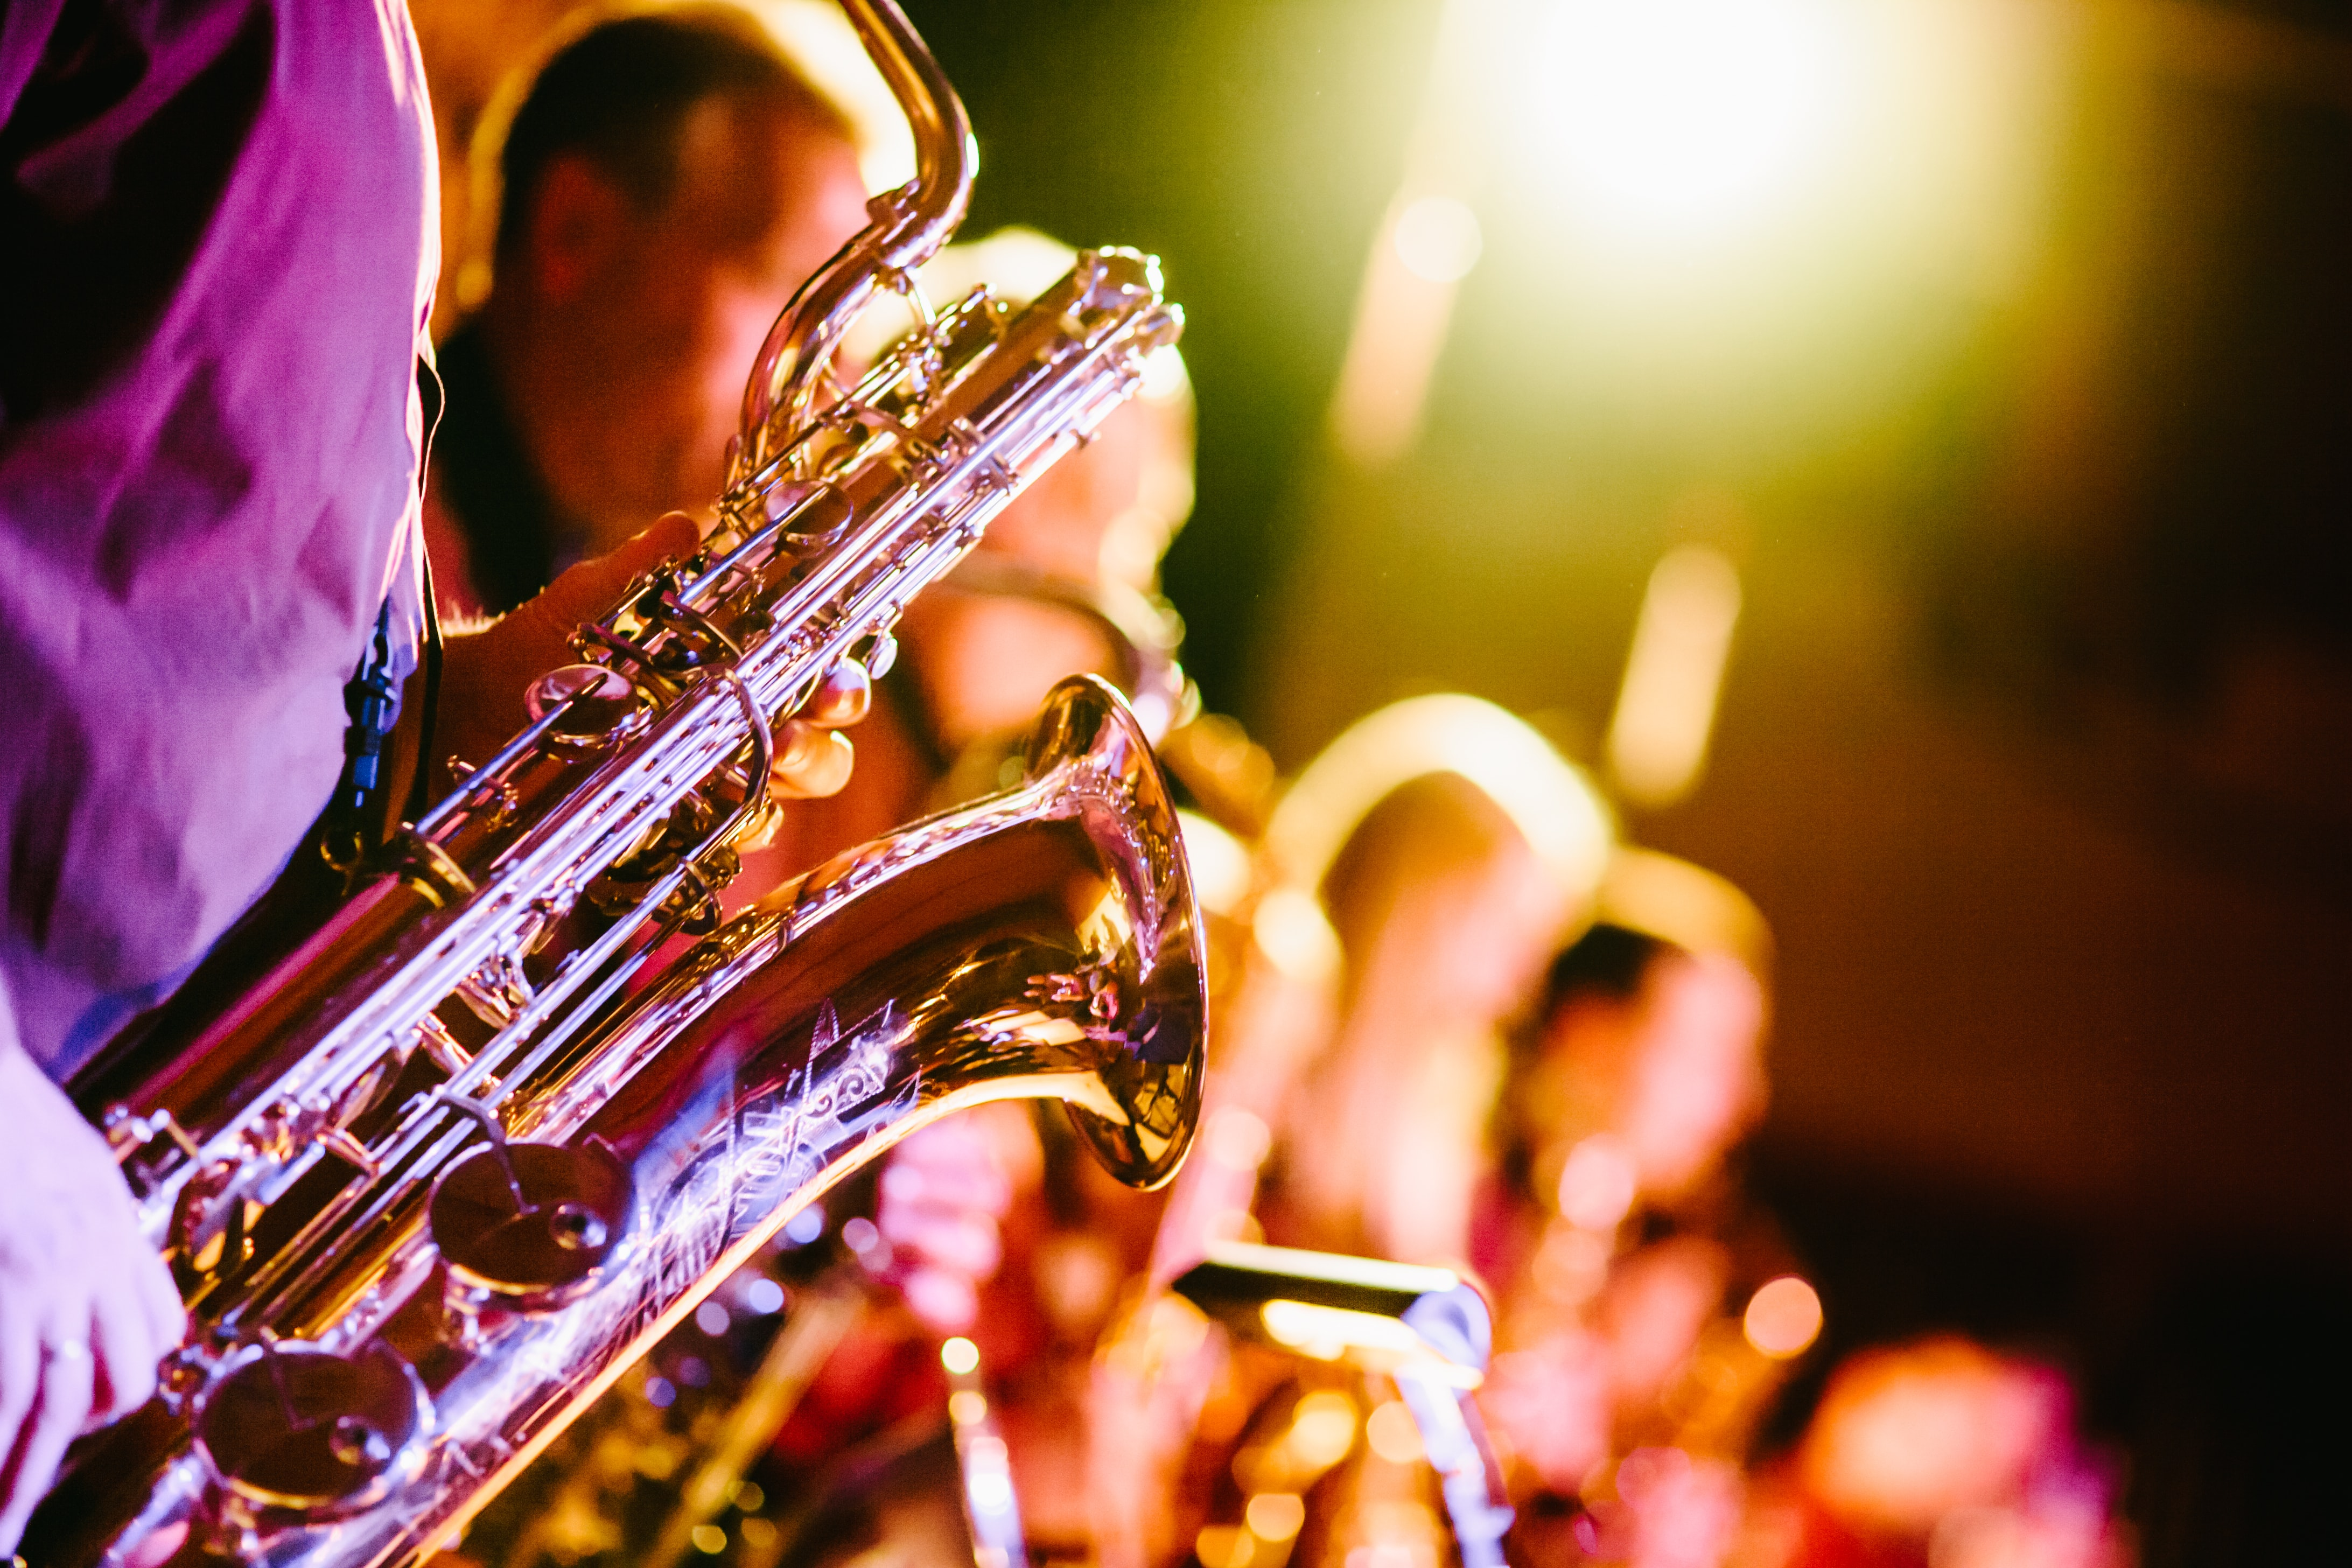 A close-up of a saxophone held by one of the band members during a jazz concert